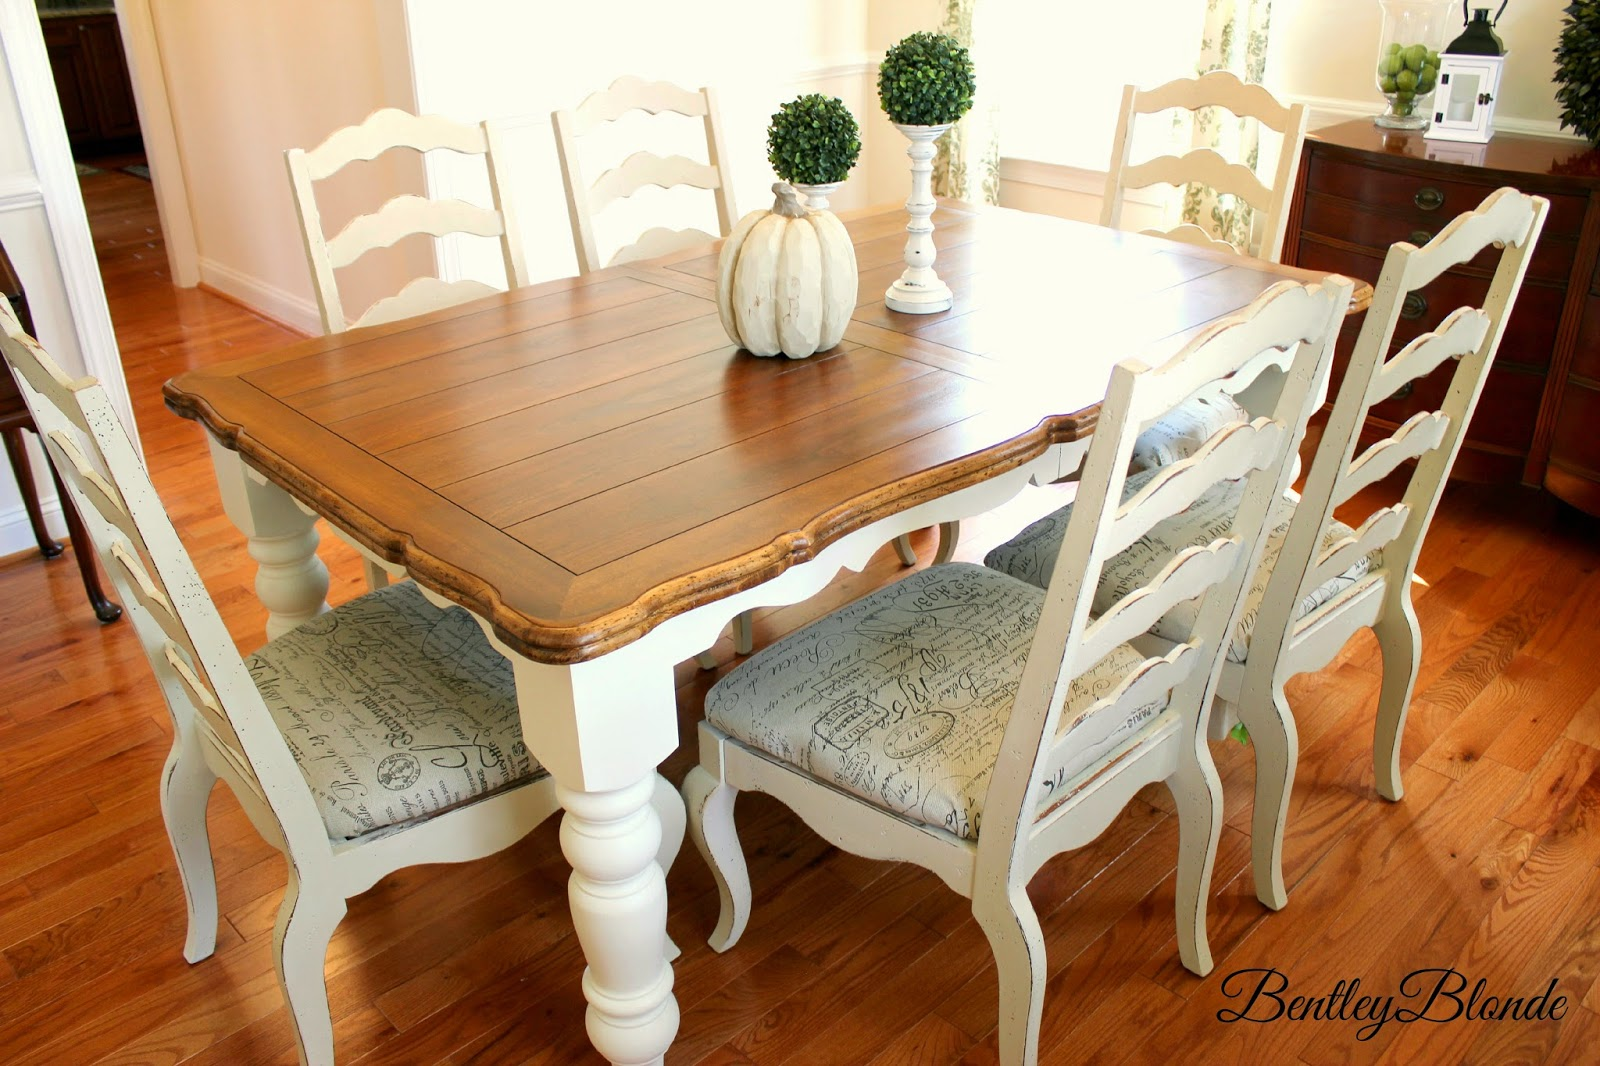 Dining table with chairs -  White Table Legs Ivory Chairs I Can T Wait To Sit Around This Table With Family Enjoying Many Delicious Meals And Memories Together In The Future